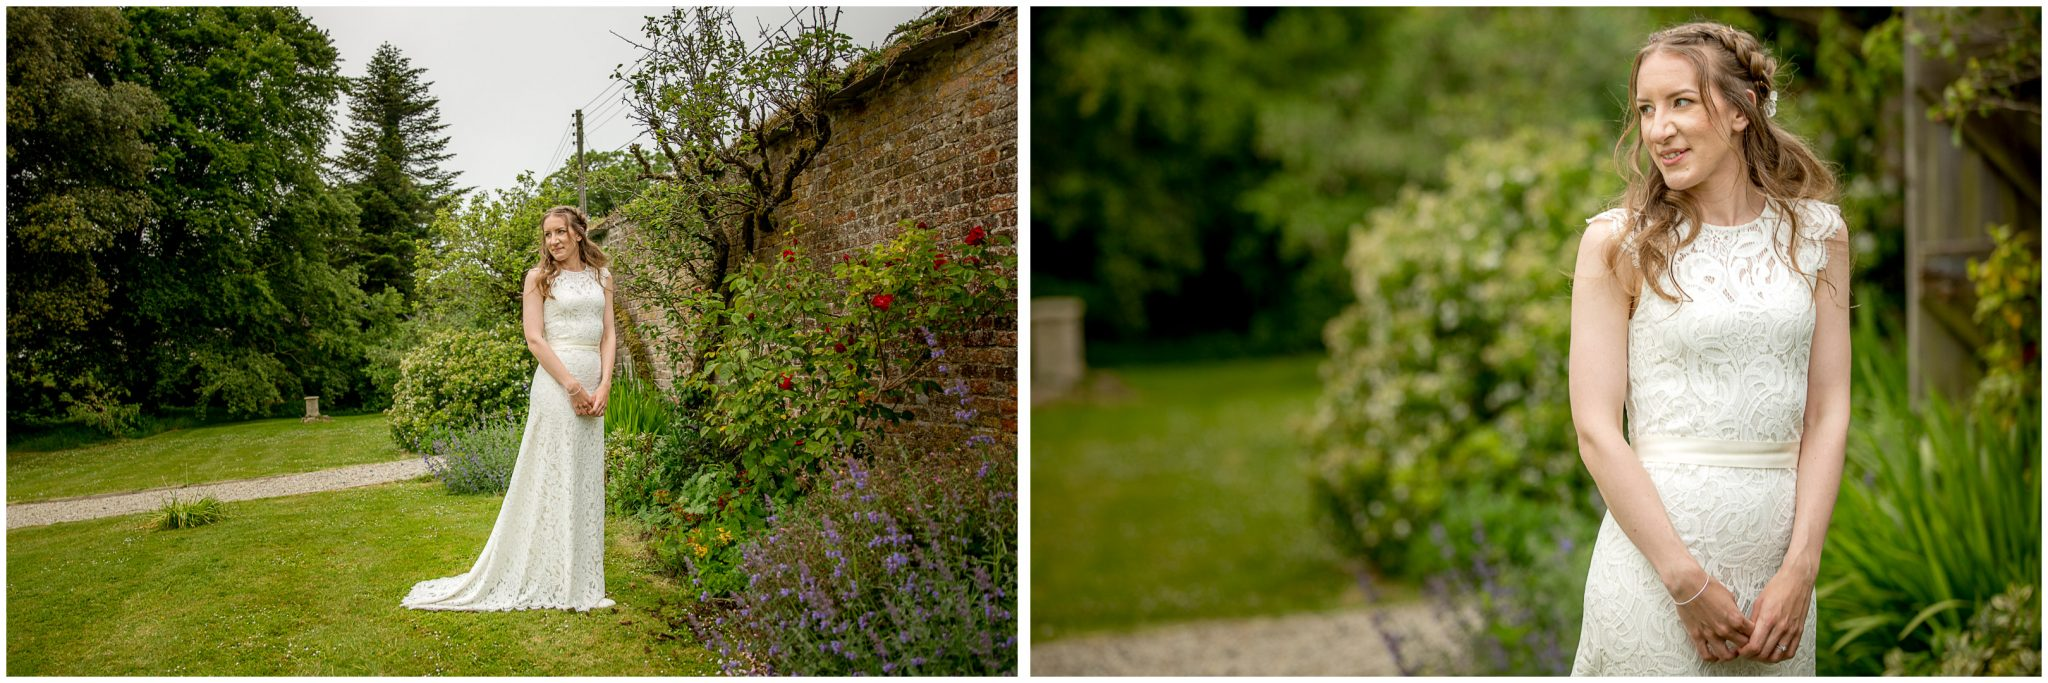 Bride portraits in the gardens of the house exclusive wedding venue near Bude